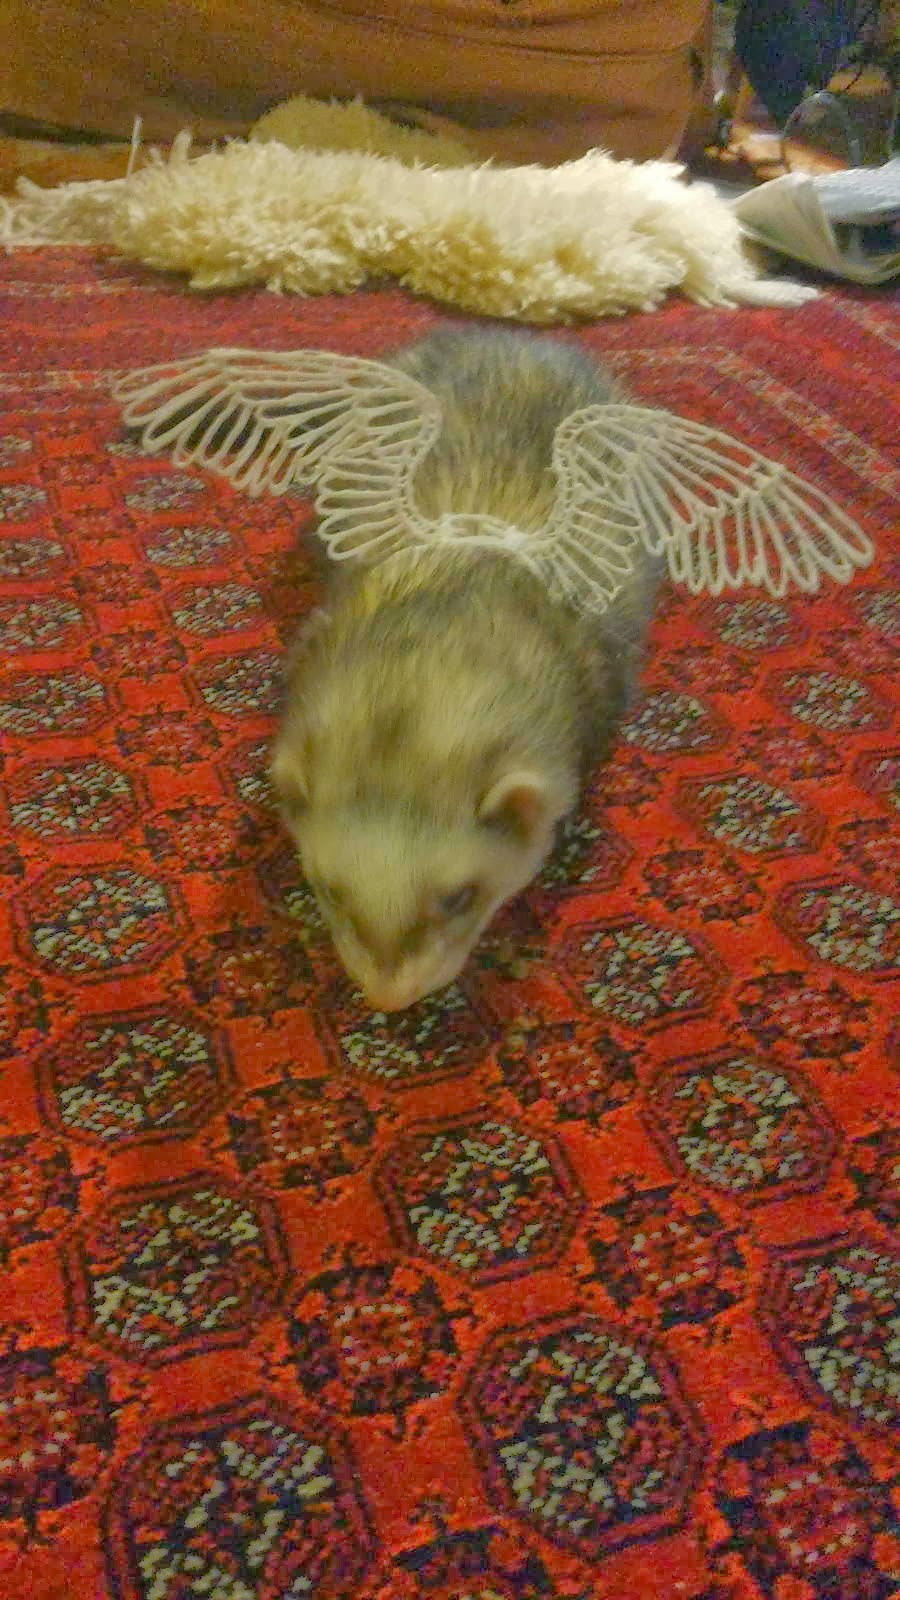 Funny animals of the week - 20 December 2013 (40 pics), cute ferret wears wings